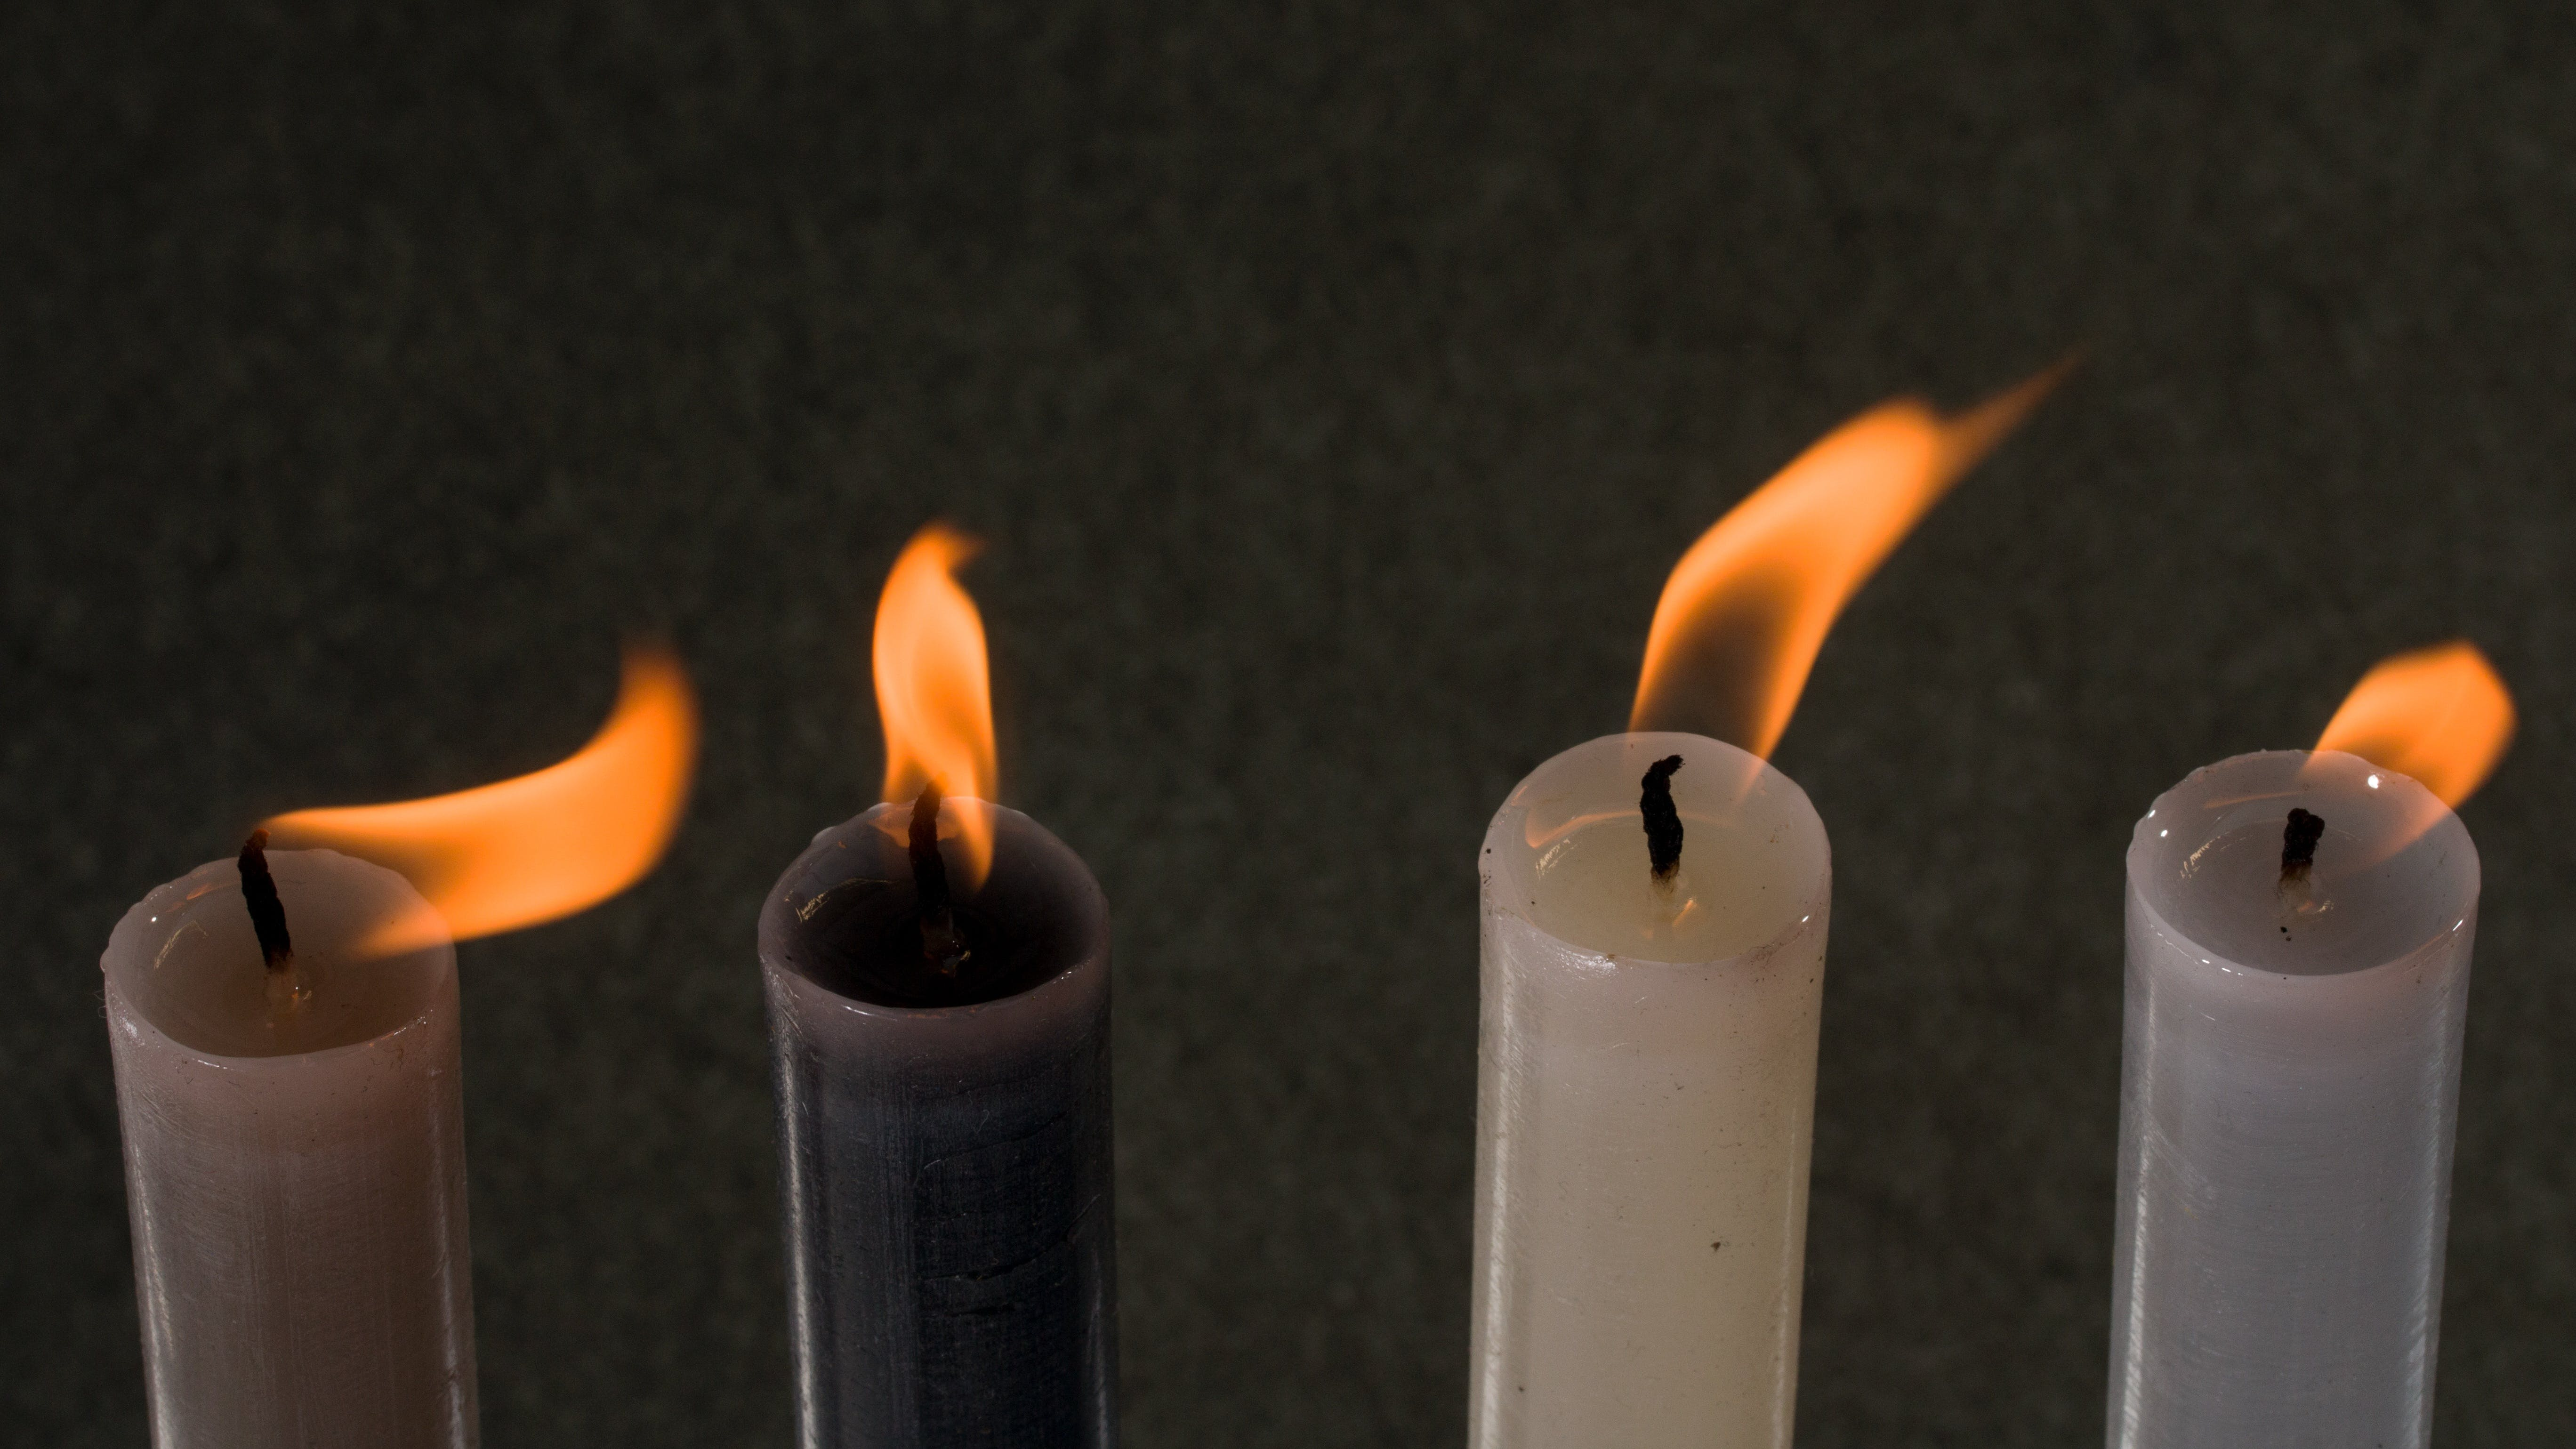 Free stock photo of candlelight, candles, flame, kindle